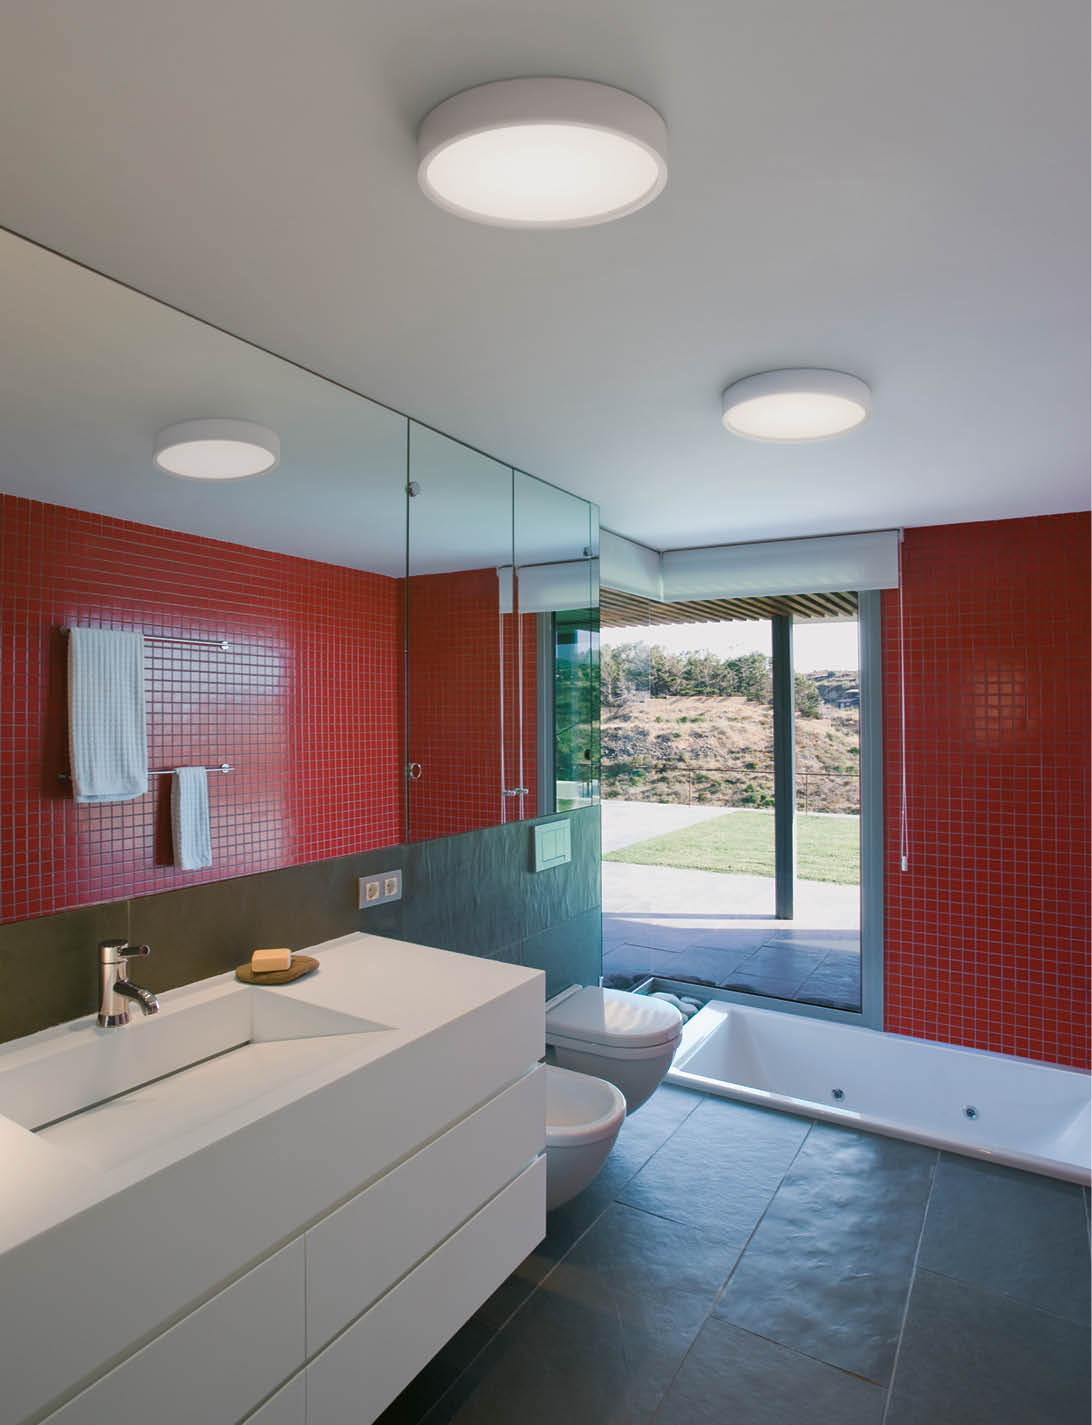 Bath Fixtures - Ceiling  Plus